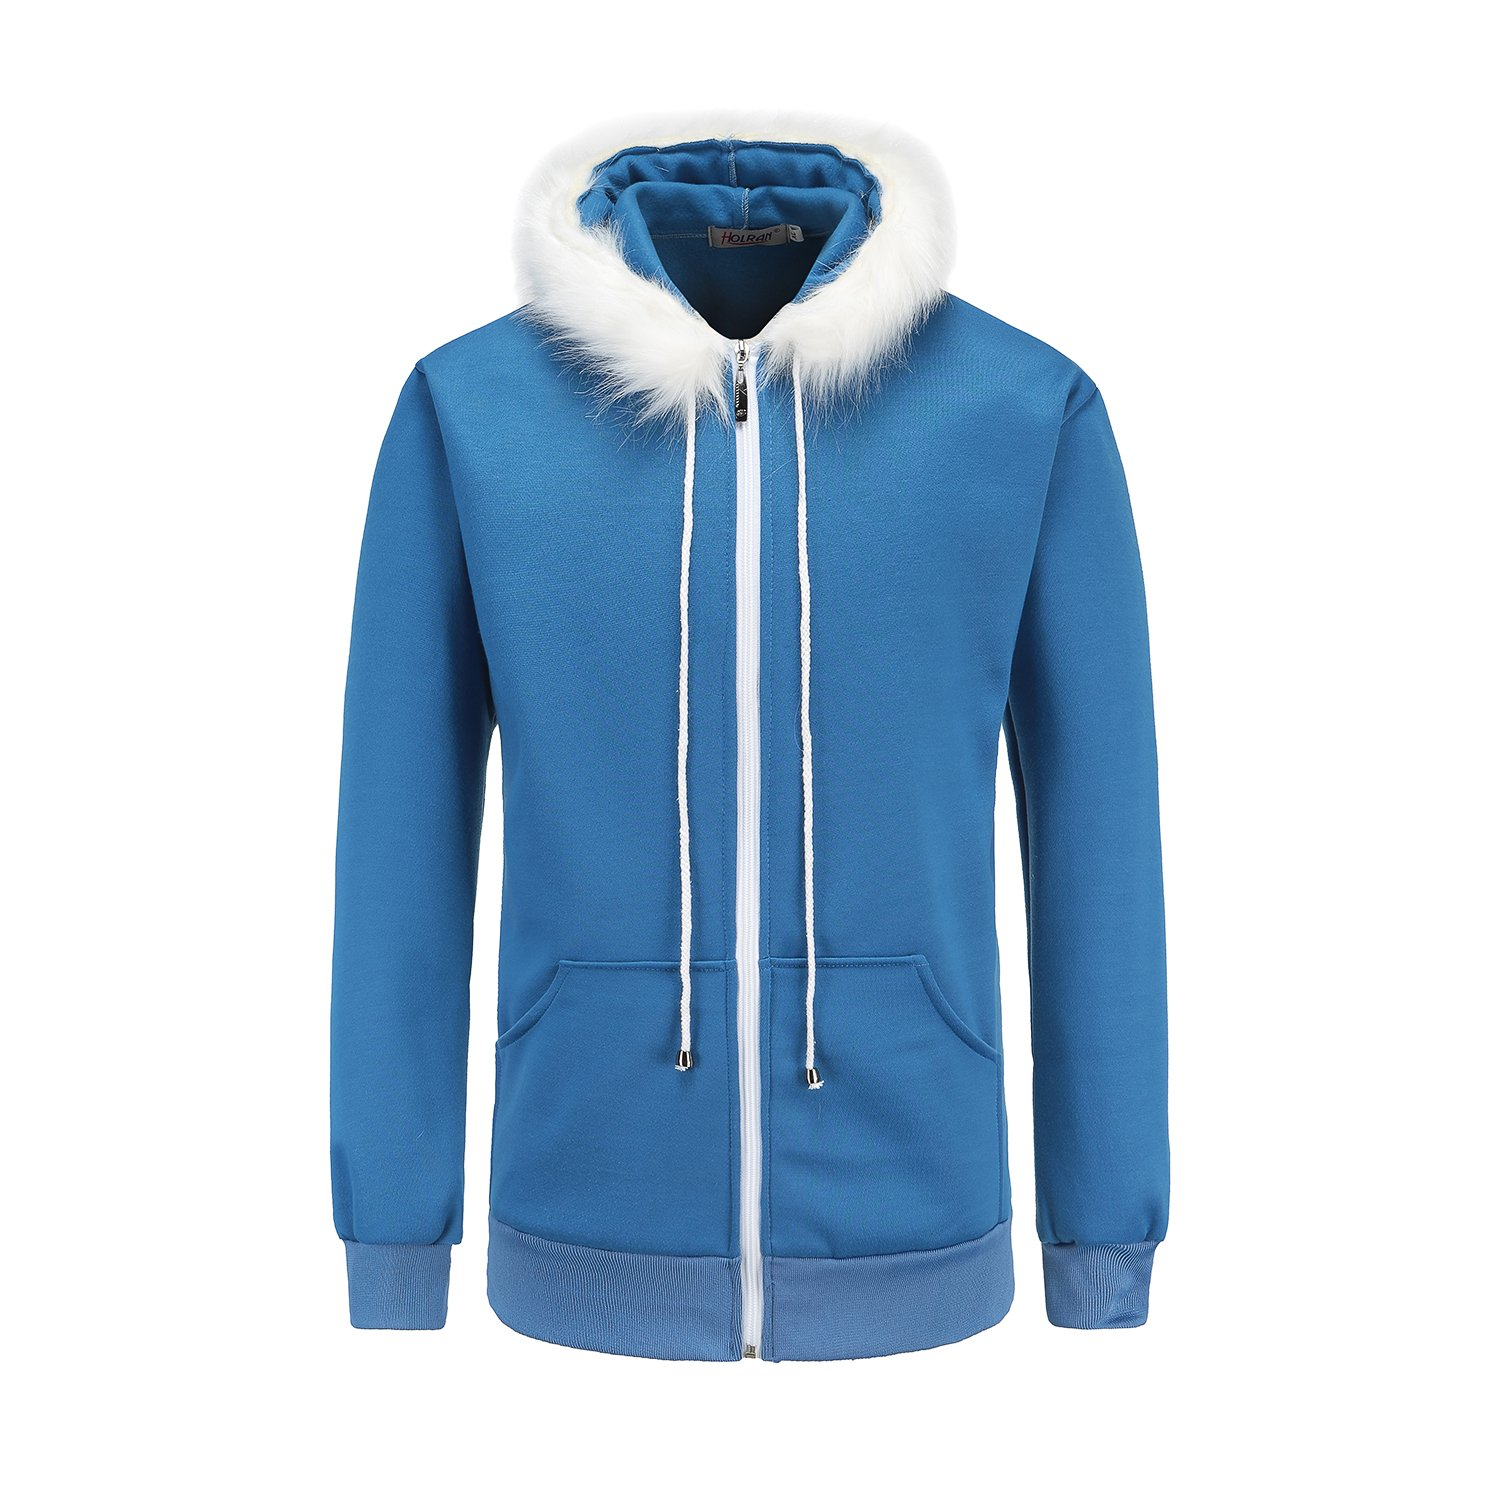 NSOKing Men's Casual Cool Blue Cosplay Daily Use Hoodie (XX-Large, Blue)